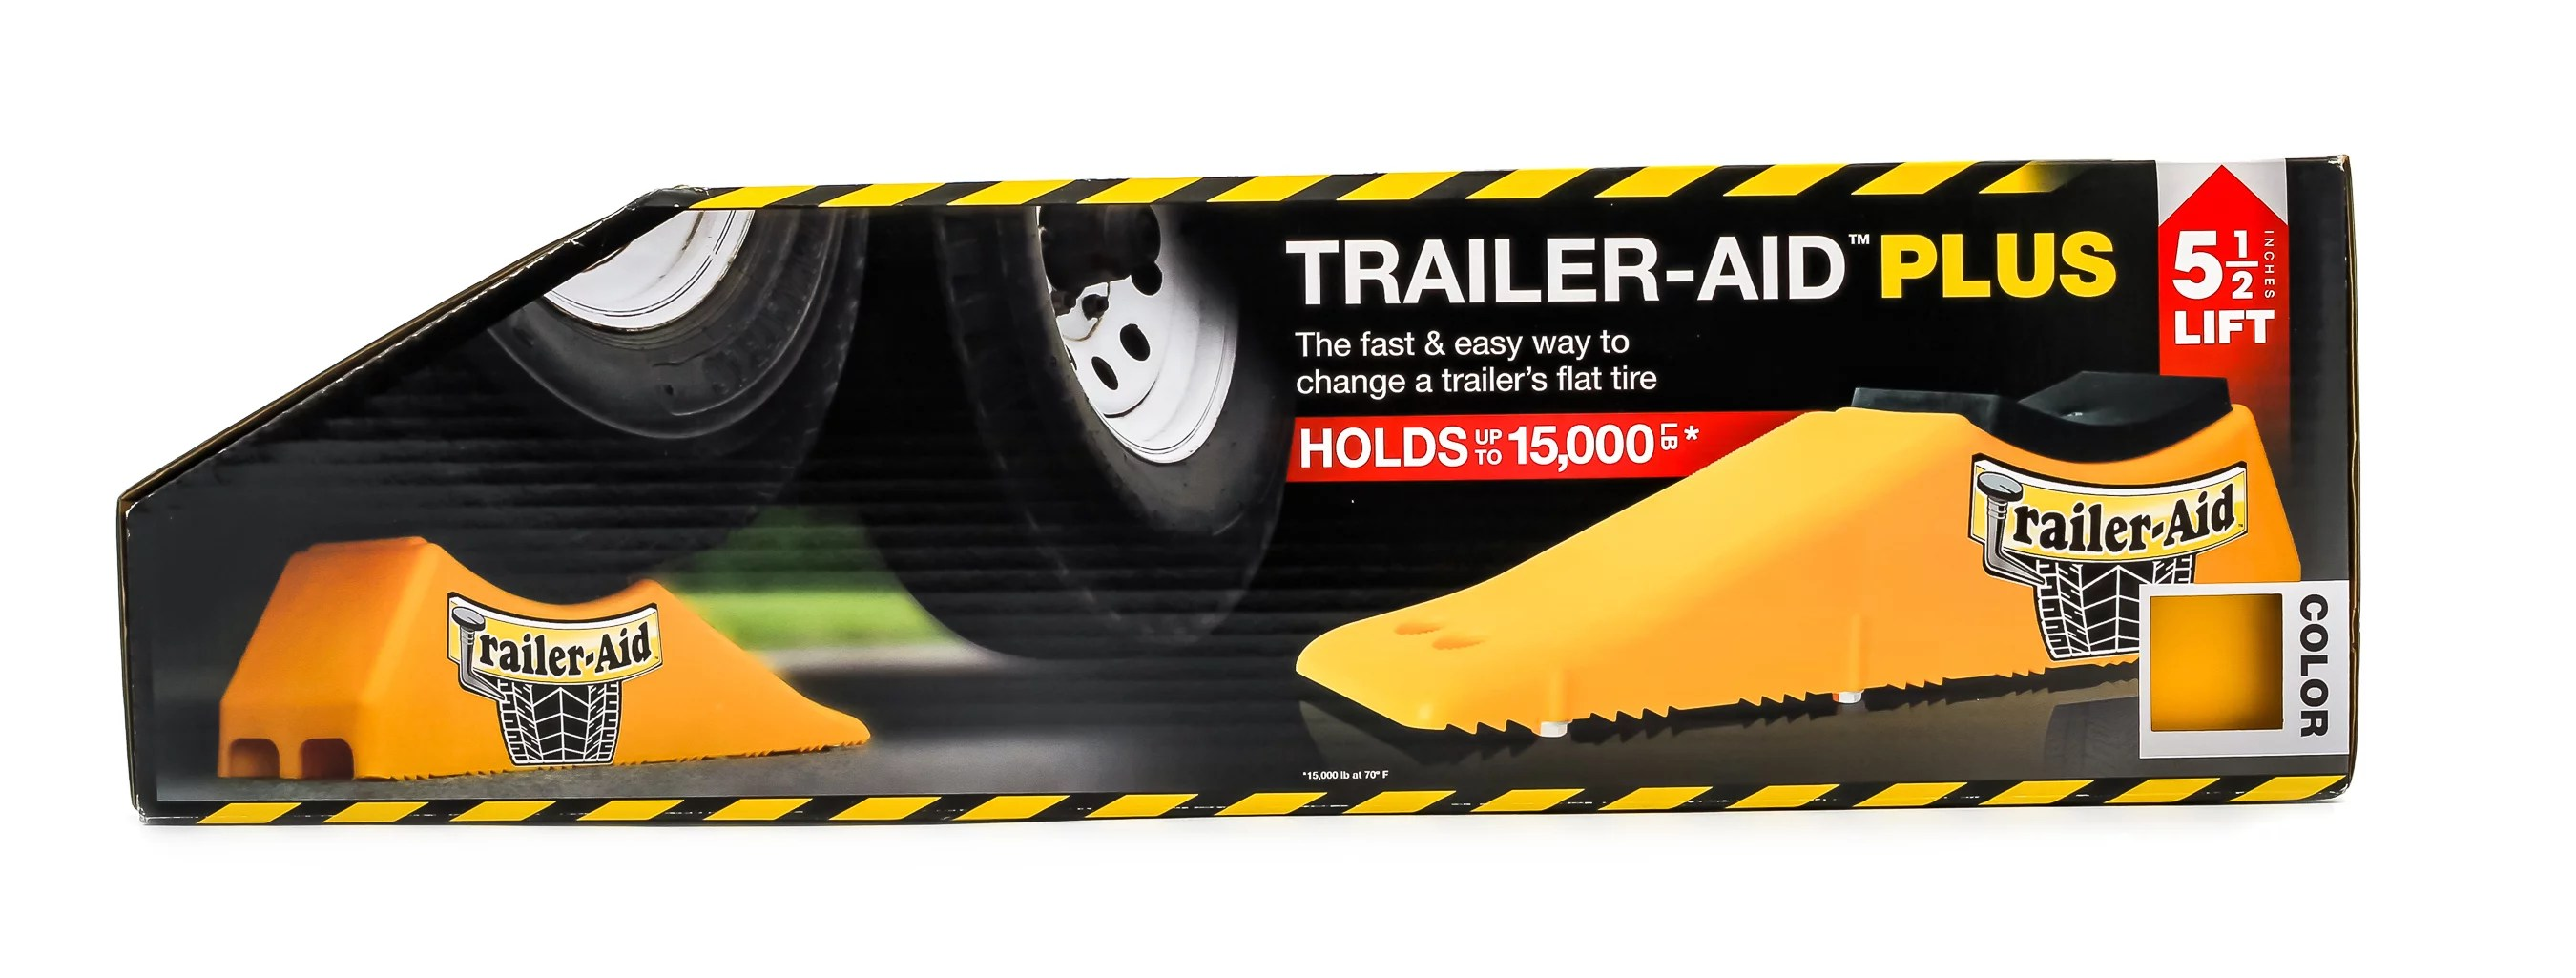 "Camco Trailer-Aid ""Plus"" Tandem Tire Changing Ramp, The Fast and Easy Way To Change A Trailer's Flat Tire, Holds up to 15,000 Pounds, 5.5 Inch Lift (Yellow)"